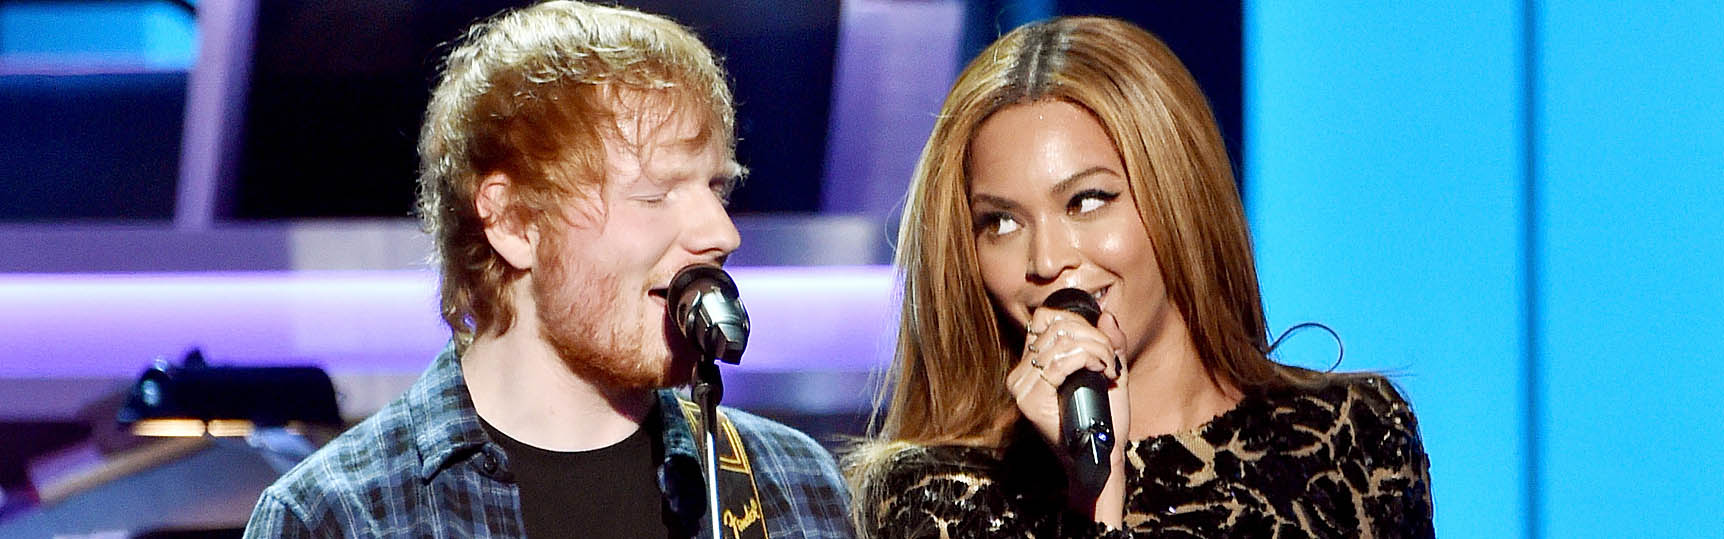 1424185970_beyonce-ed-sheeran-zoom